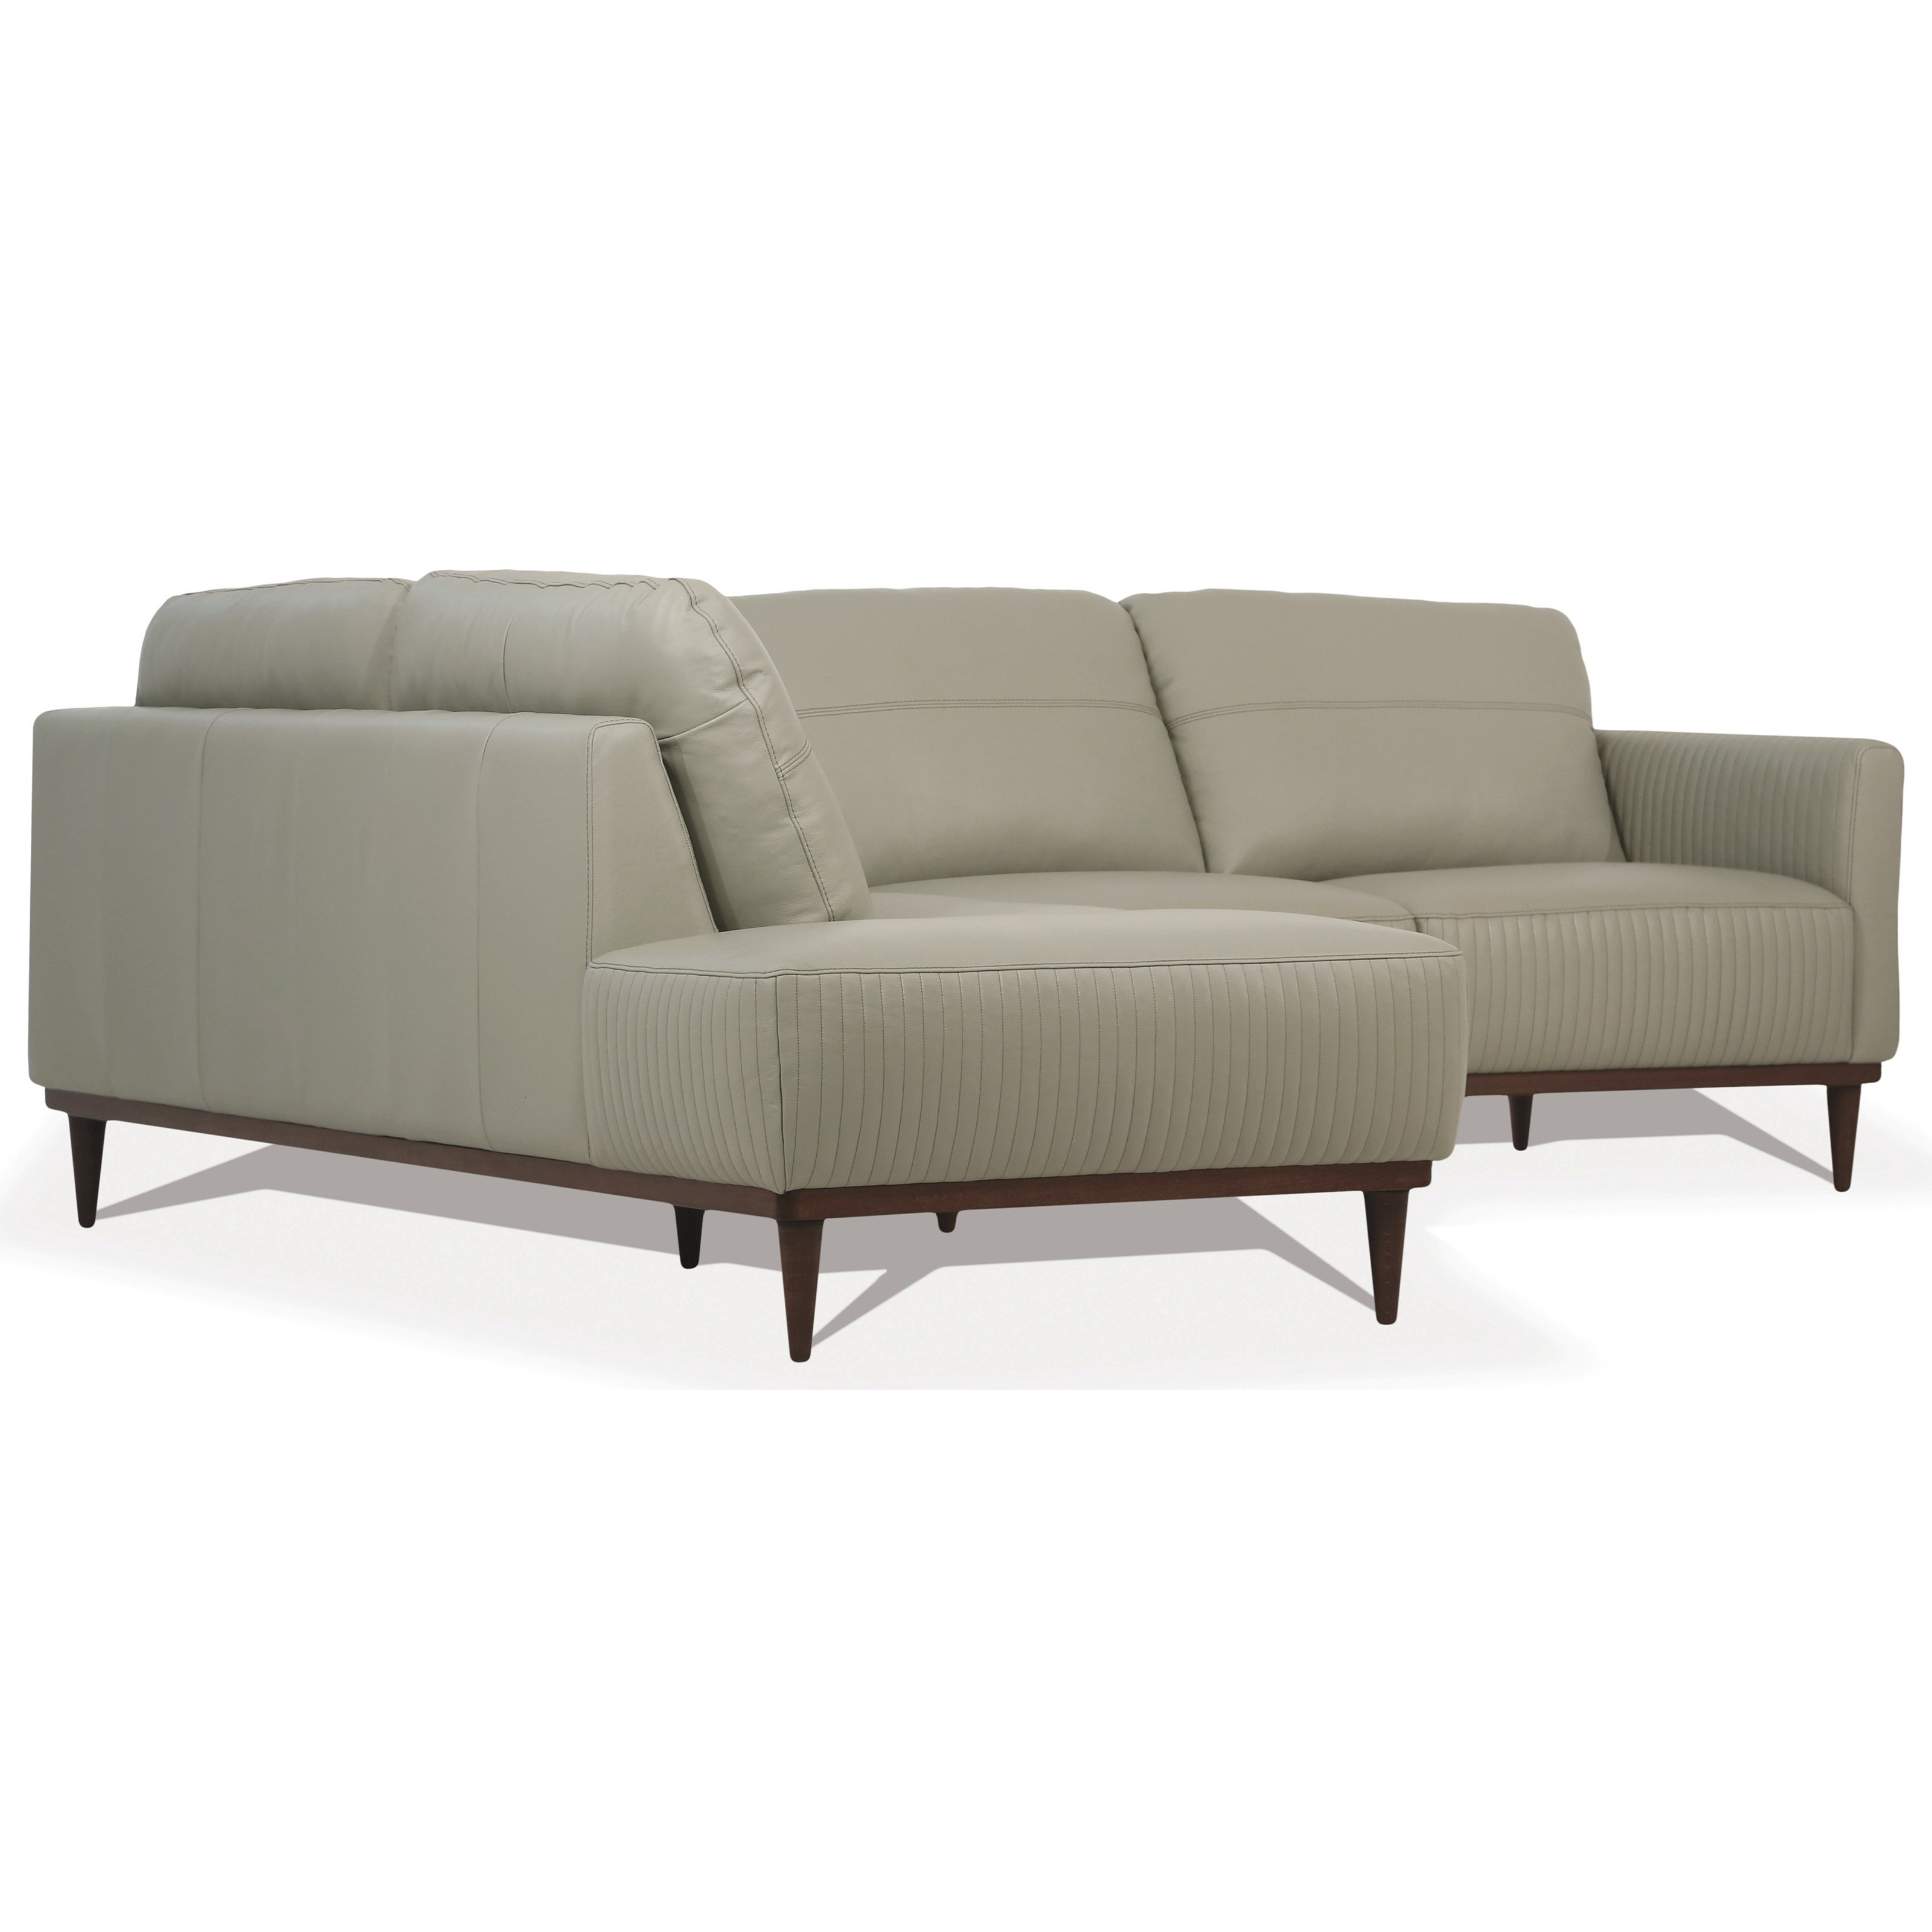 Tampa Sectional Sofa by Acme Furniture at Dream Home Interiors